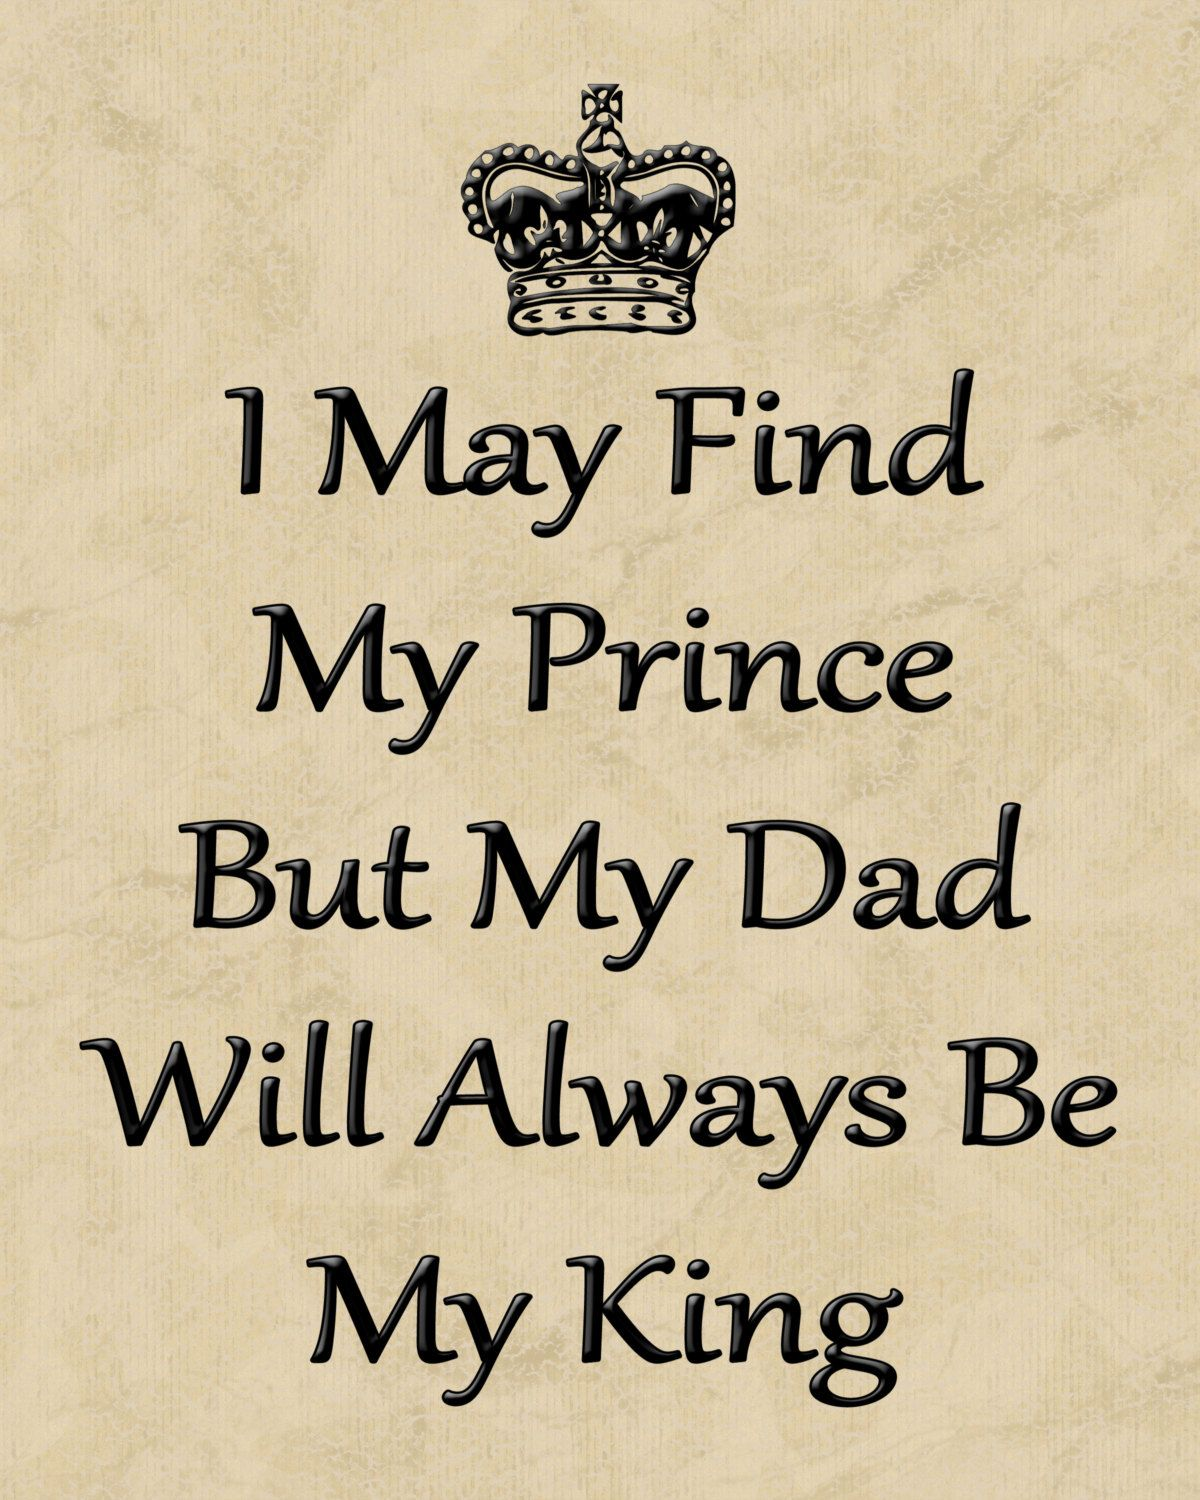 My King Quotes Dad Will Always Be My King 8 X 10 Wall Art Dad Giftbobkatink